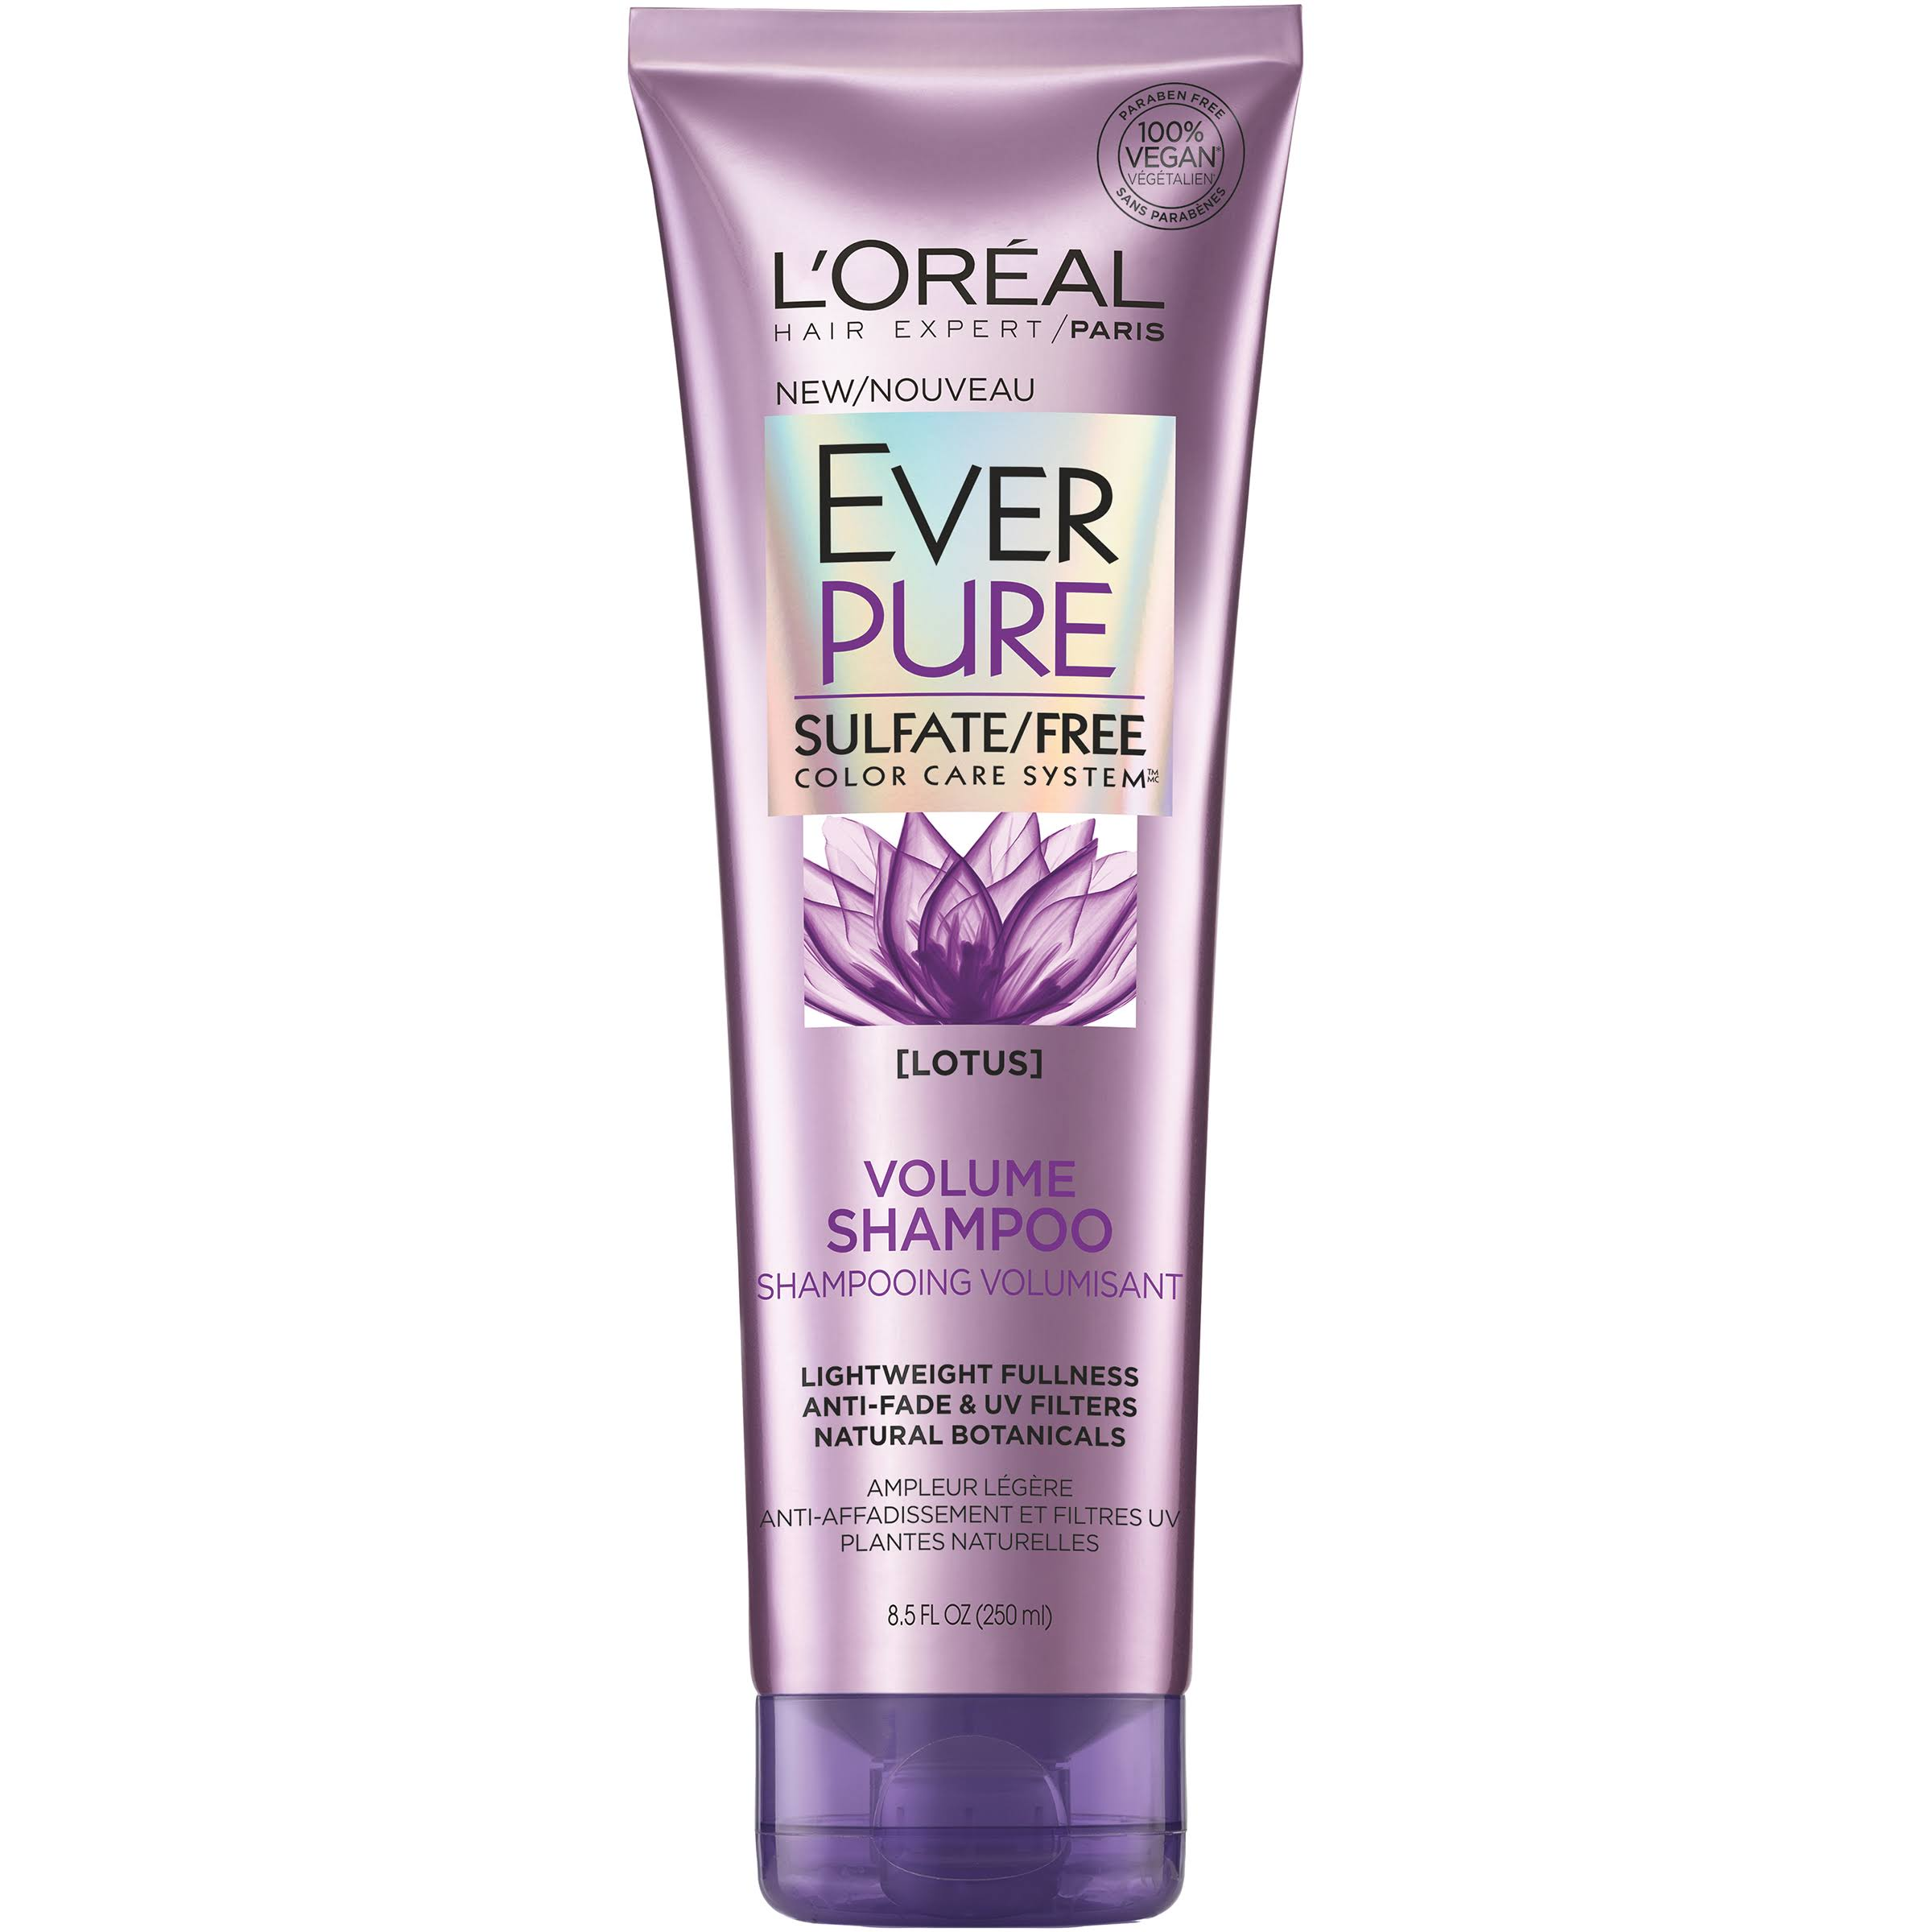 L'Oréal Paris Hair Care Ever Pure Volume Shampoo